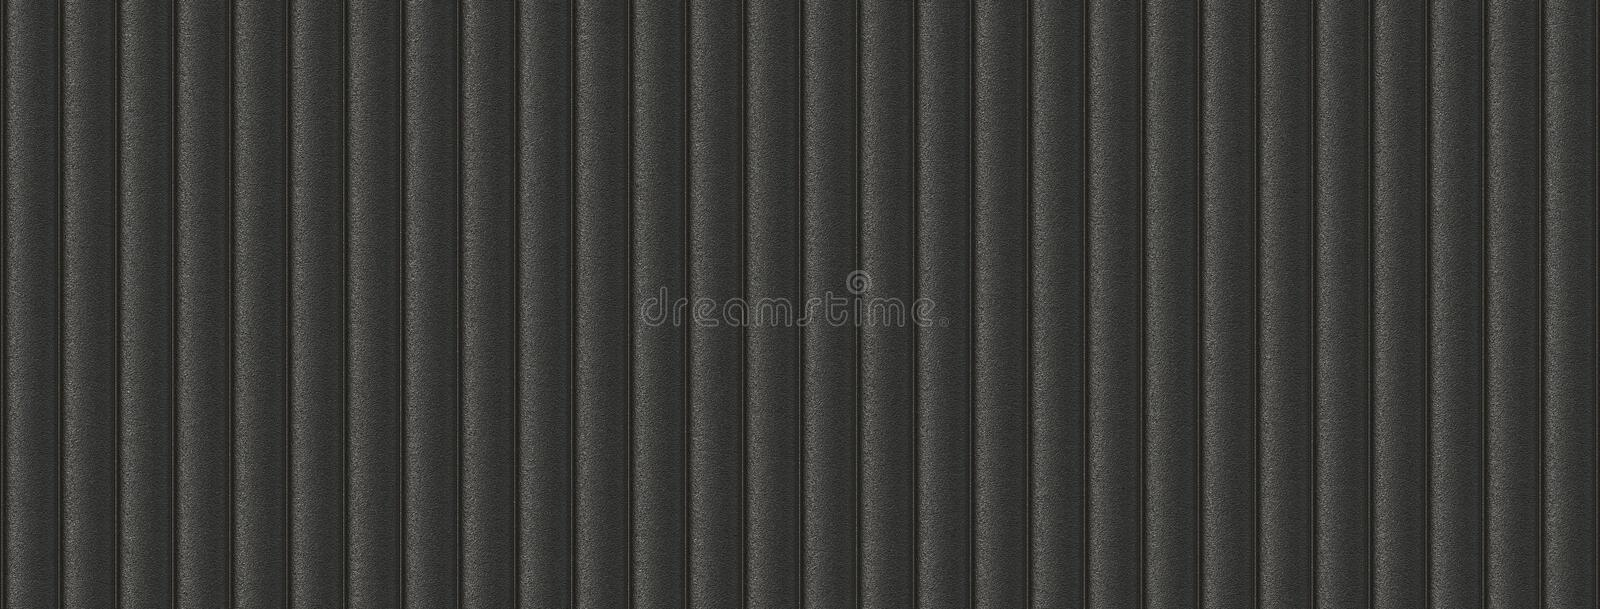 3d illustration sofa leather black seamless background vector illustration